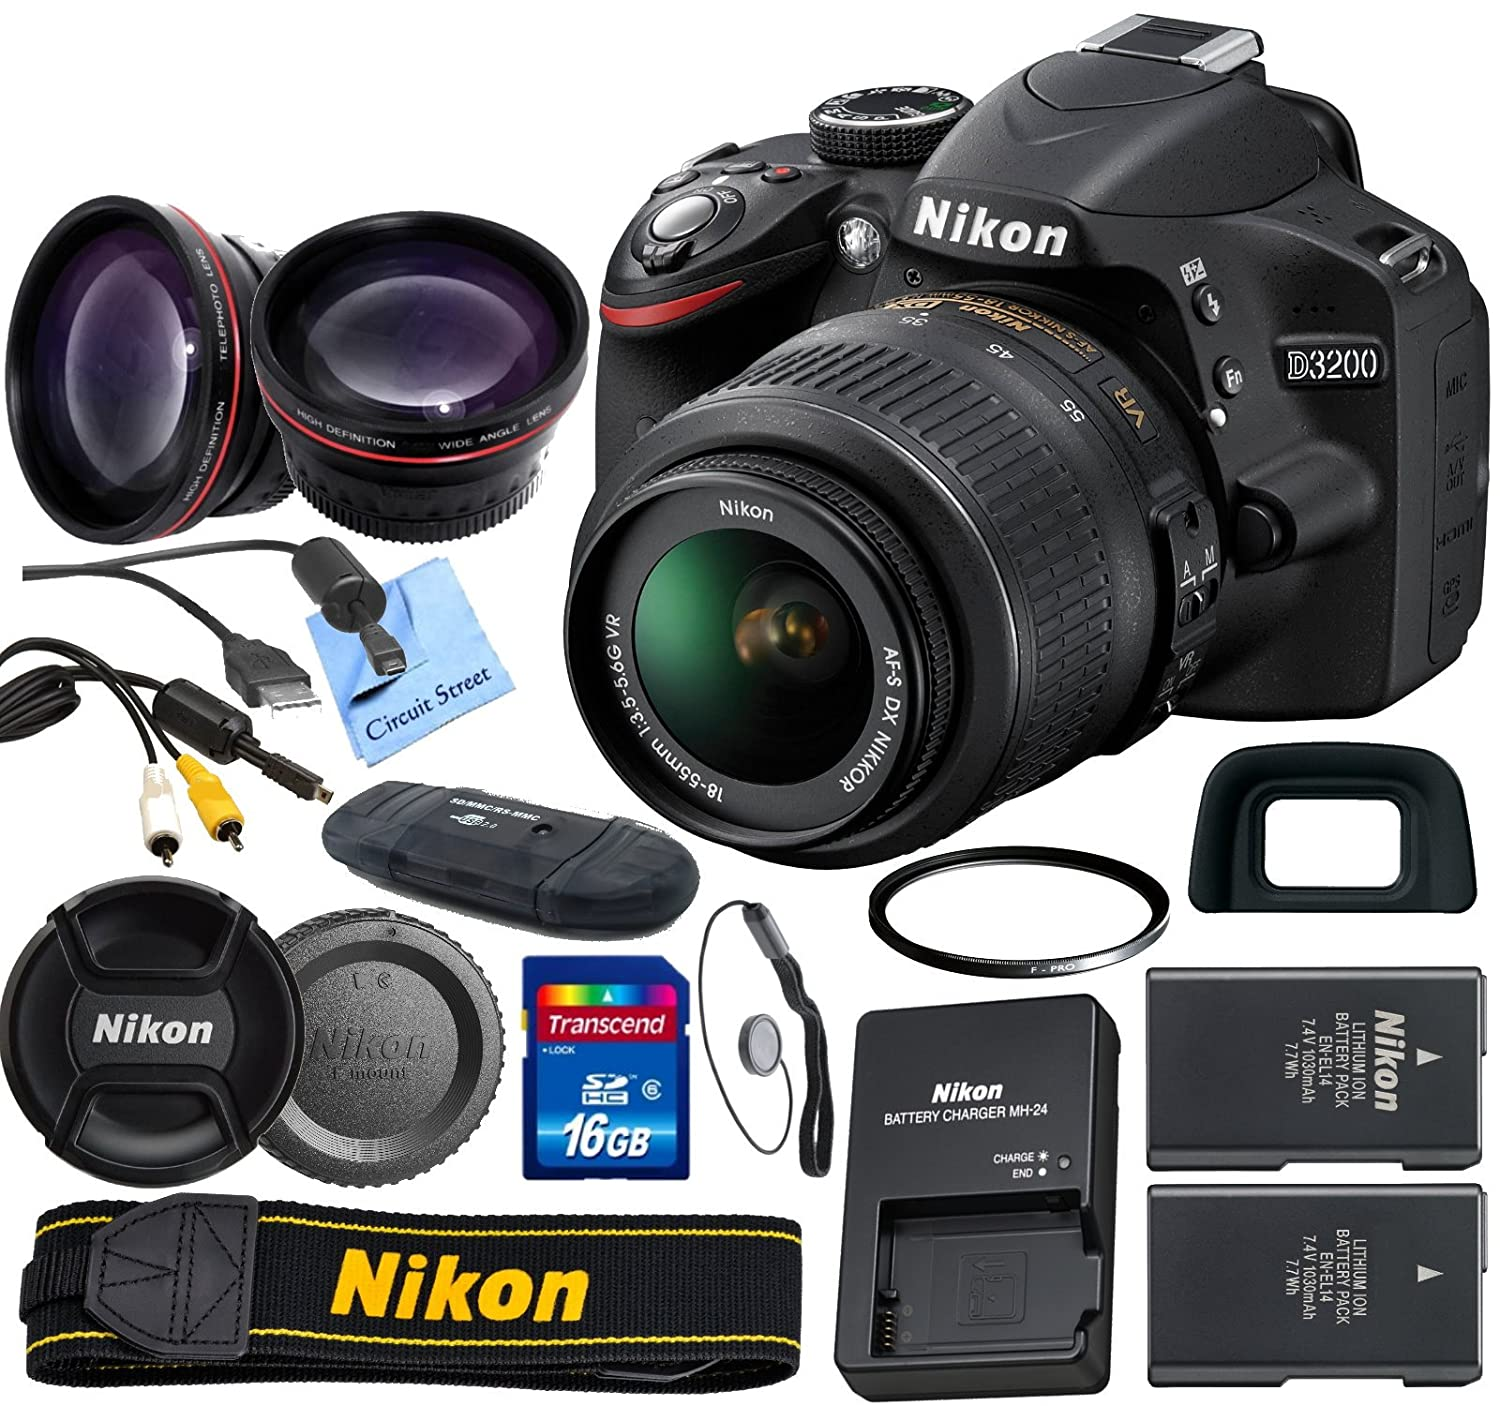 Nikon D3200 24.2 MP CMOS Digital SLR with 18-55mm f/3.5-5.6 AF-S DX VR NIKKOR Zoom Lens & CS Picture Perfect Package